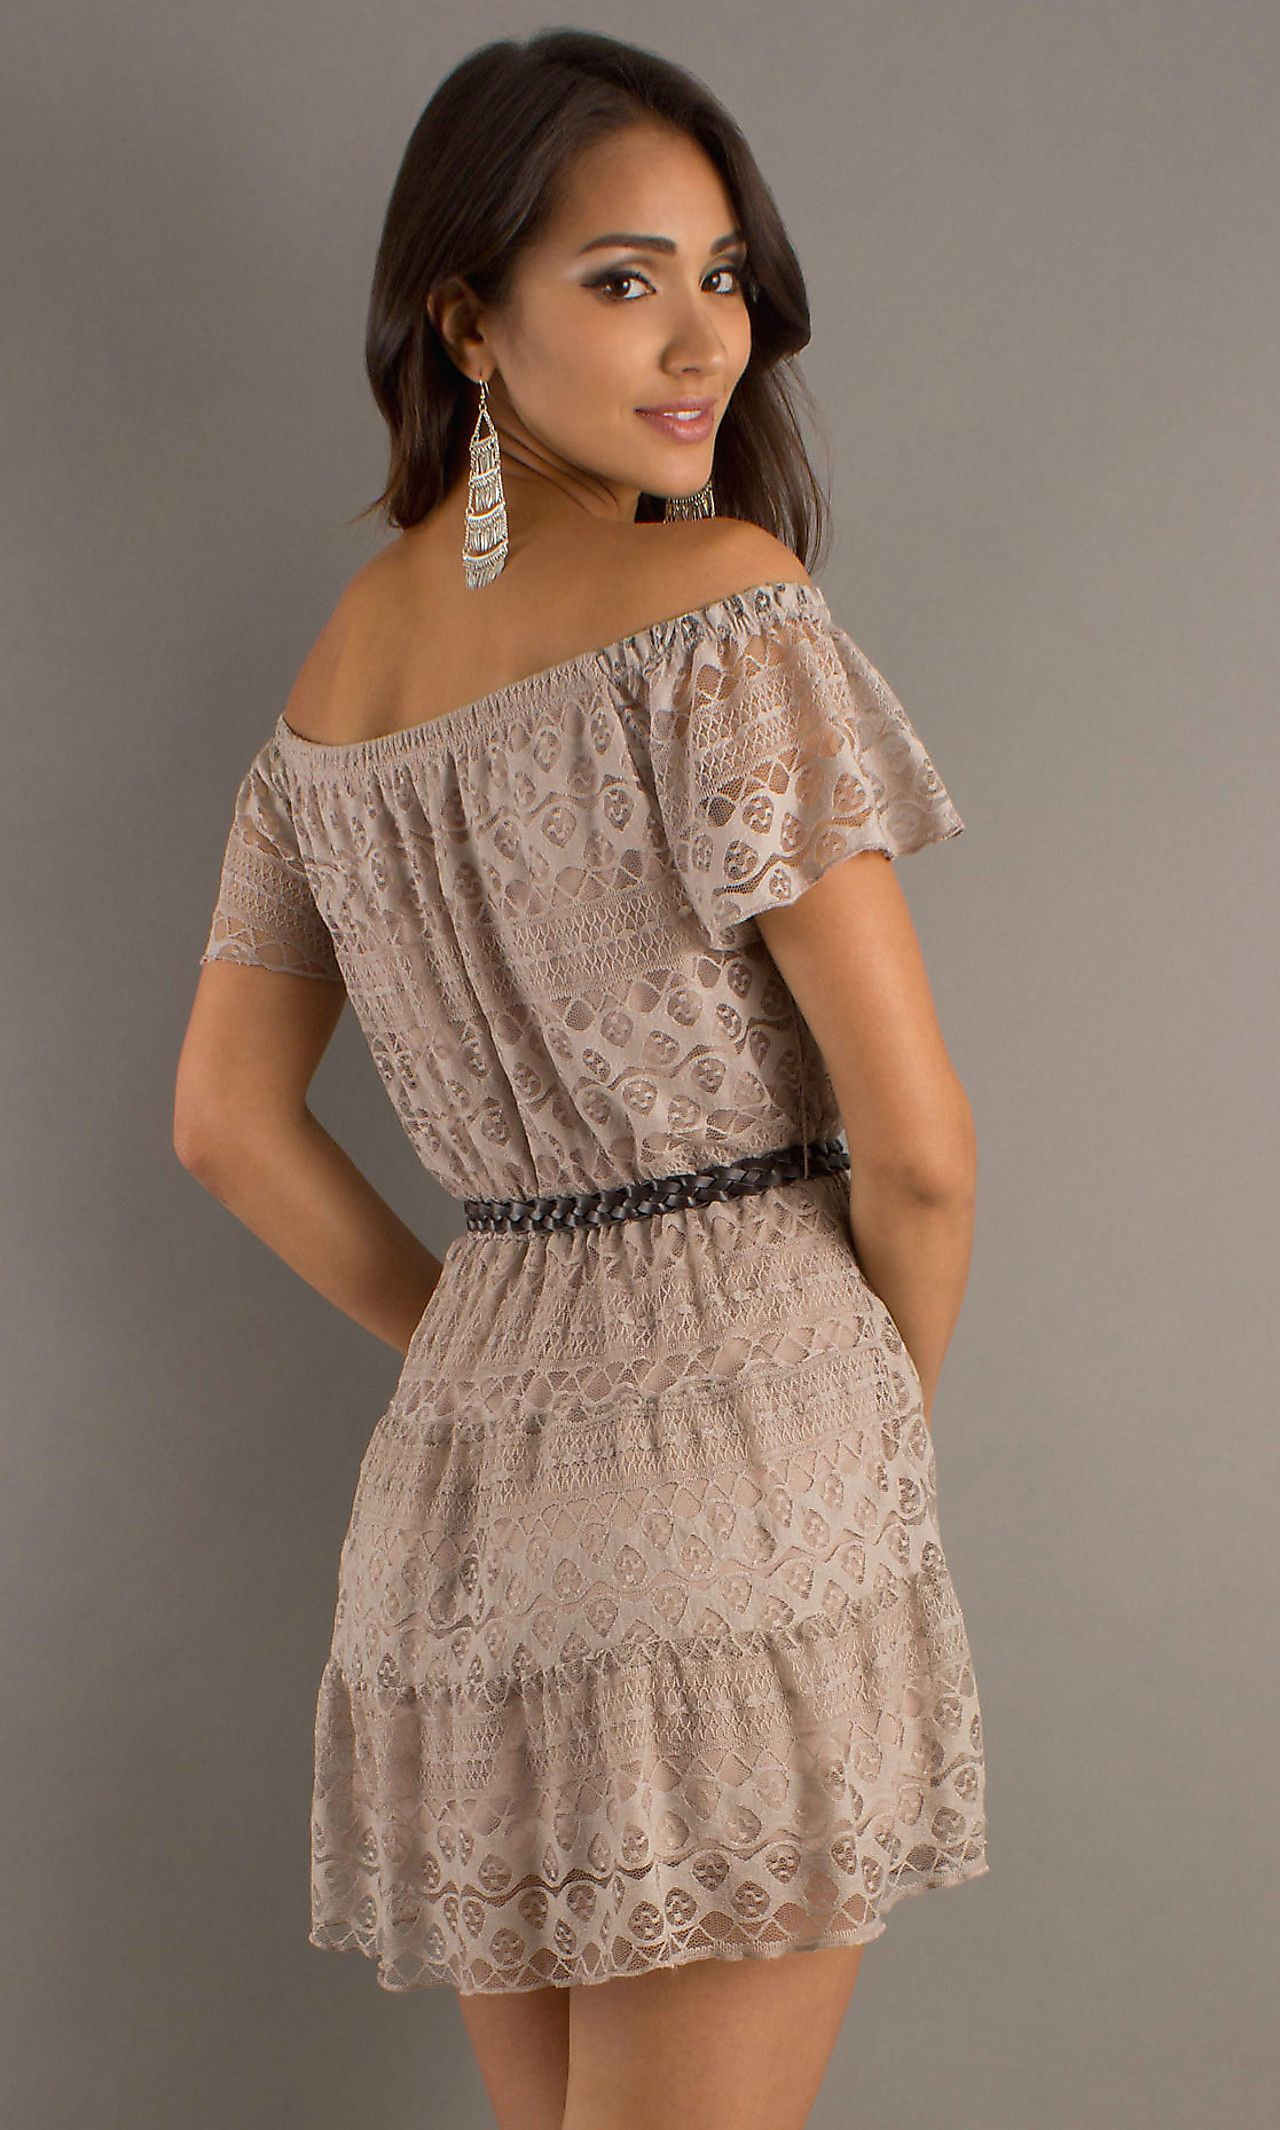 Short casual lace dress mylad promgirl cute for hannah